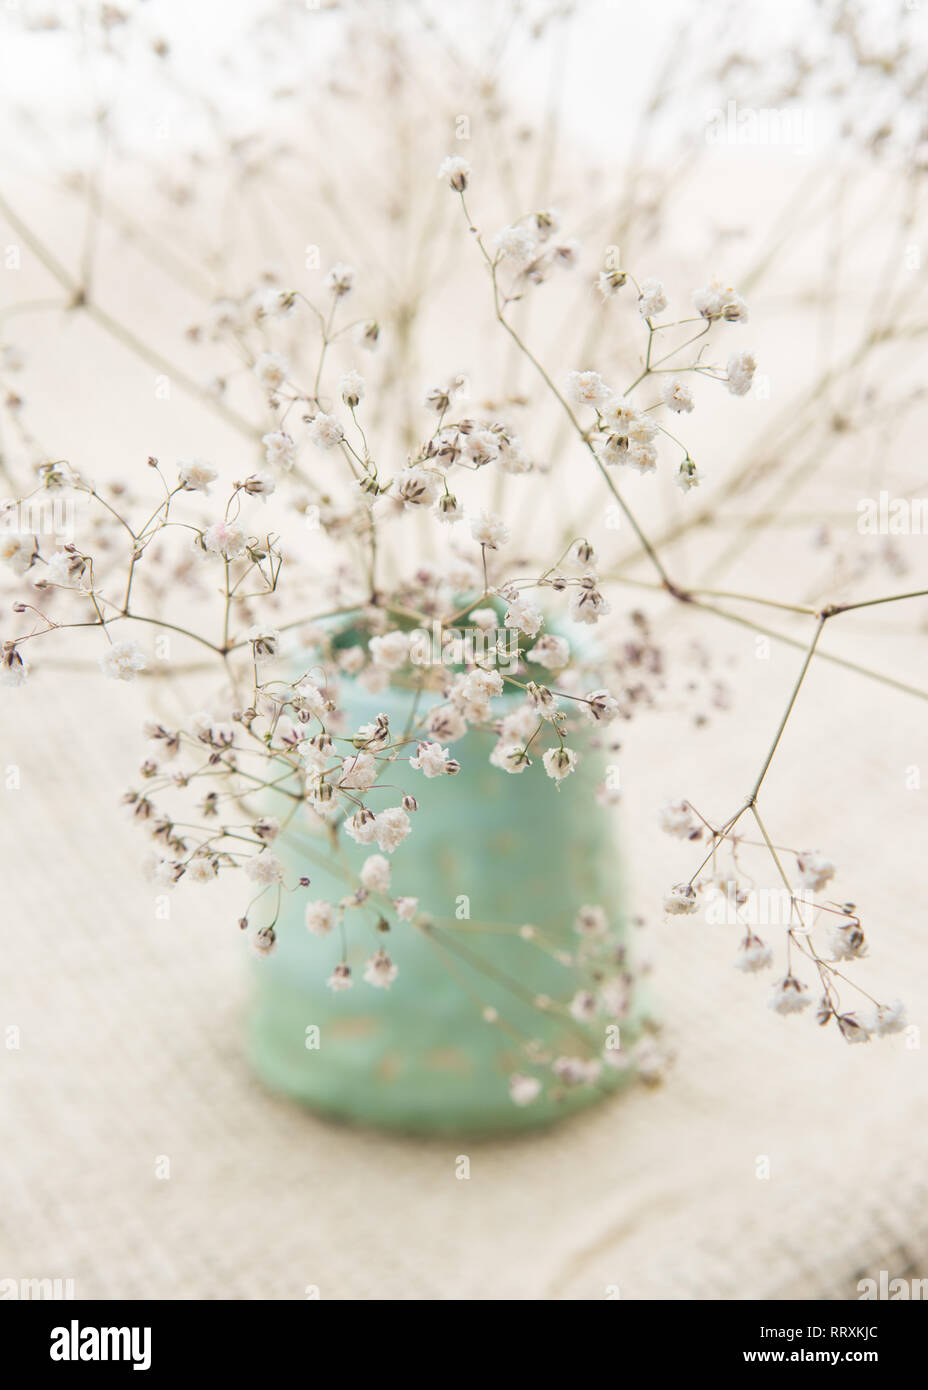 dried natural gypsophila baby's breath flowers simply arranged in handmade pale green pot against neutral hessian background - Stock Image